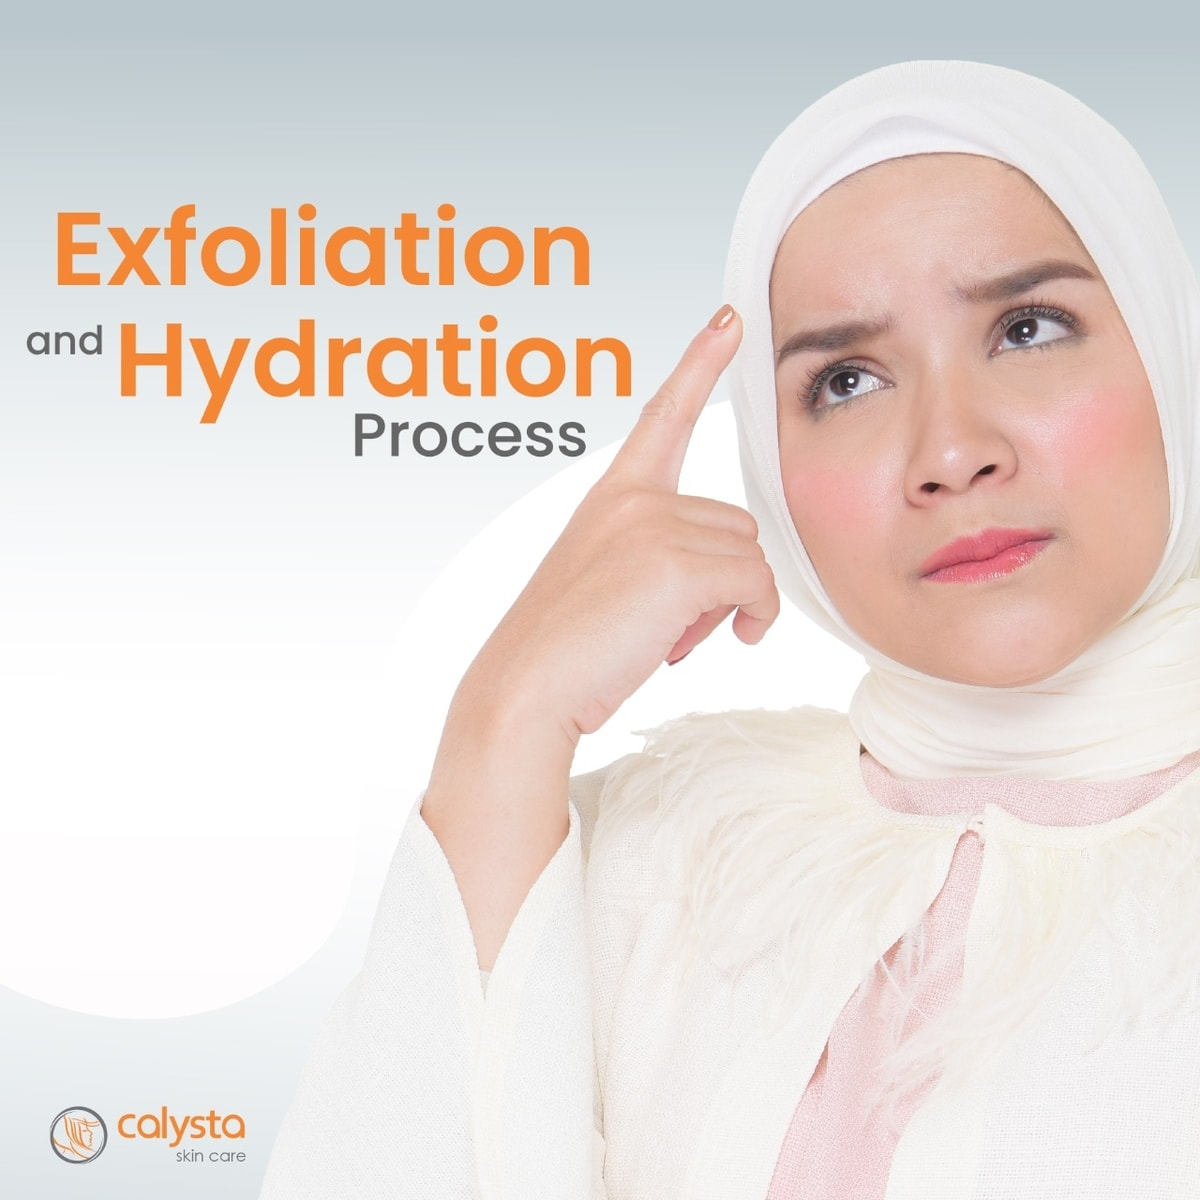 Exfoliation and Hydration Process